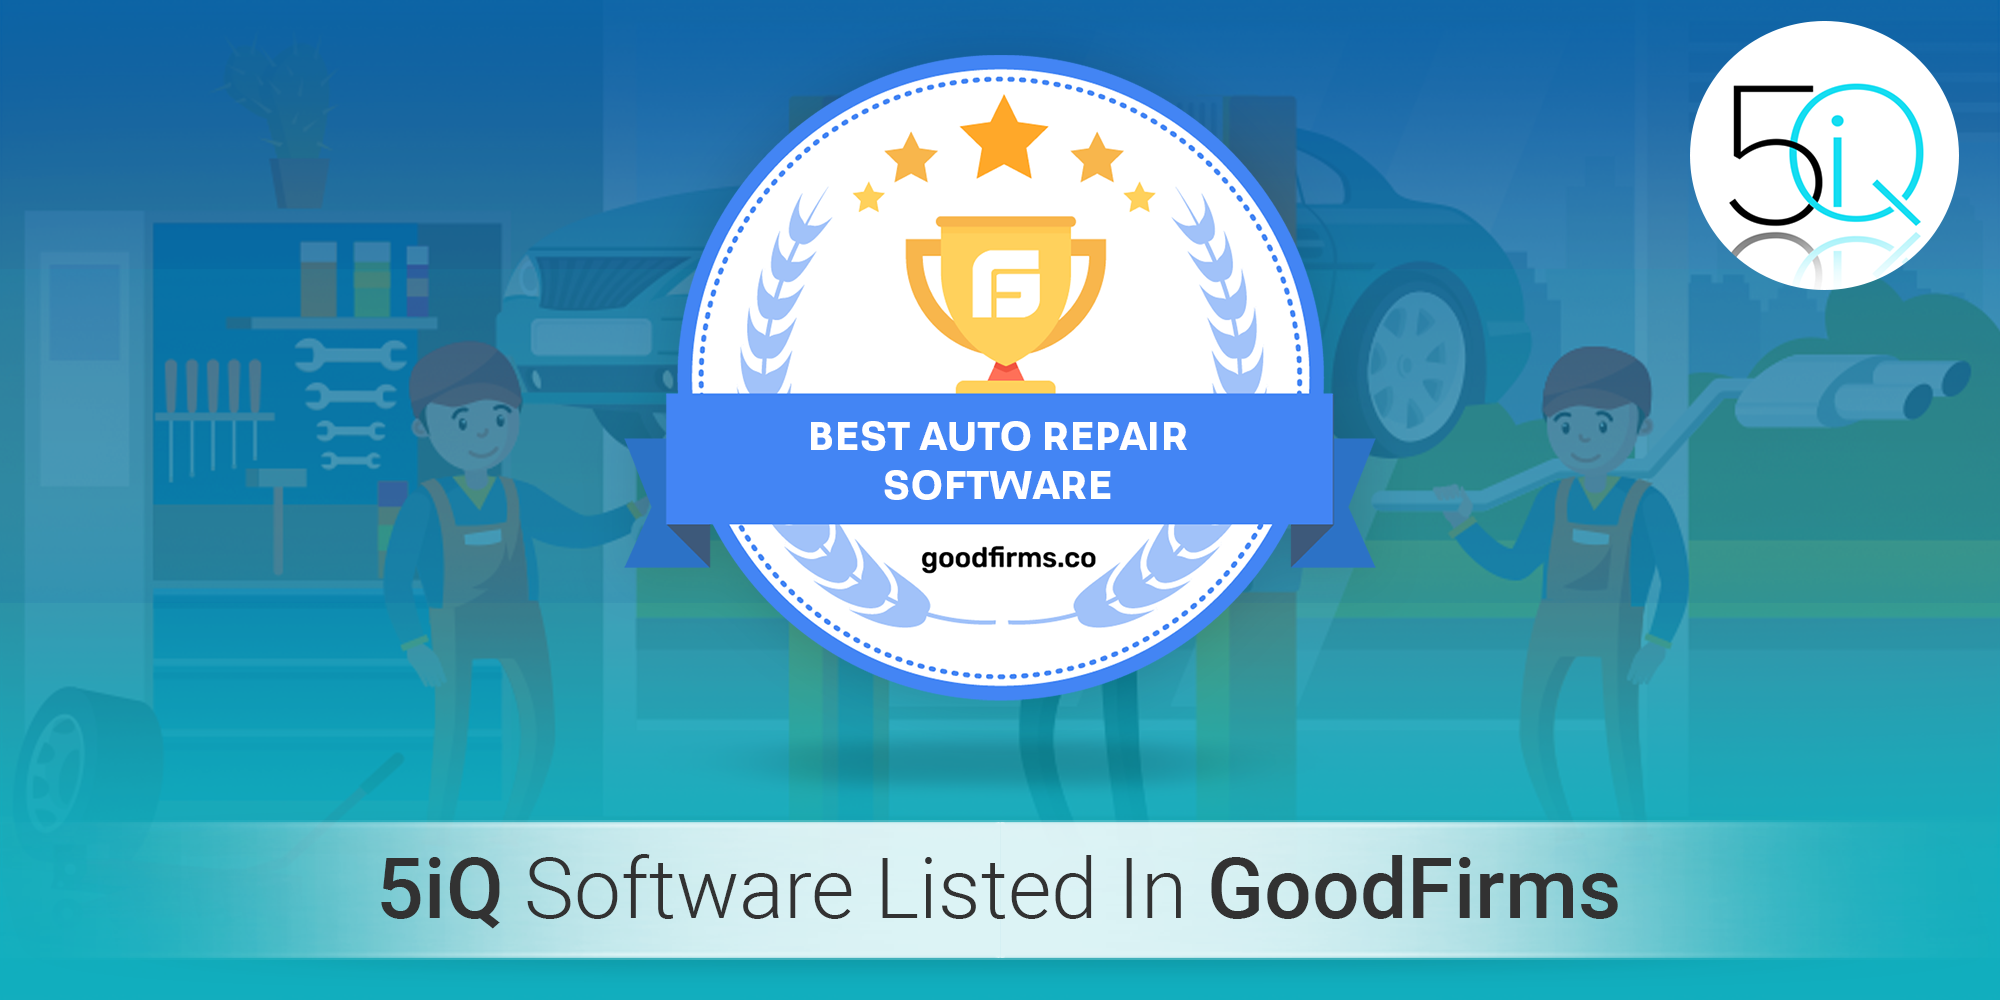 5iQ Software Listed In GoodFirms